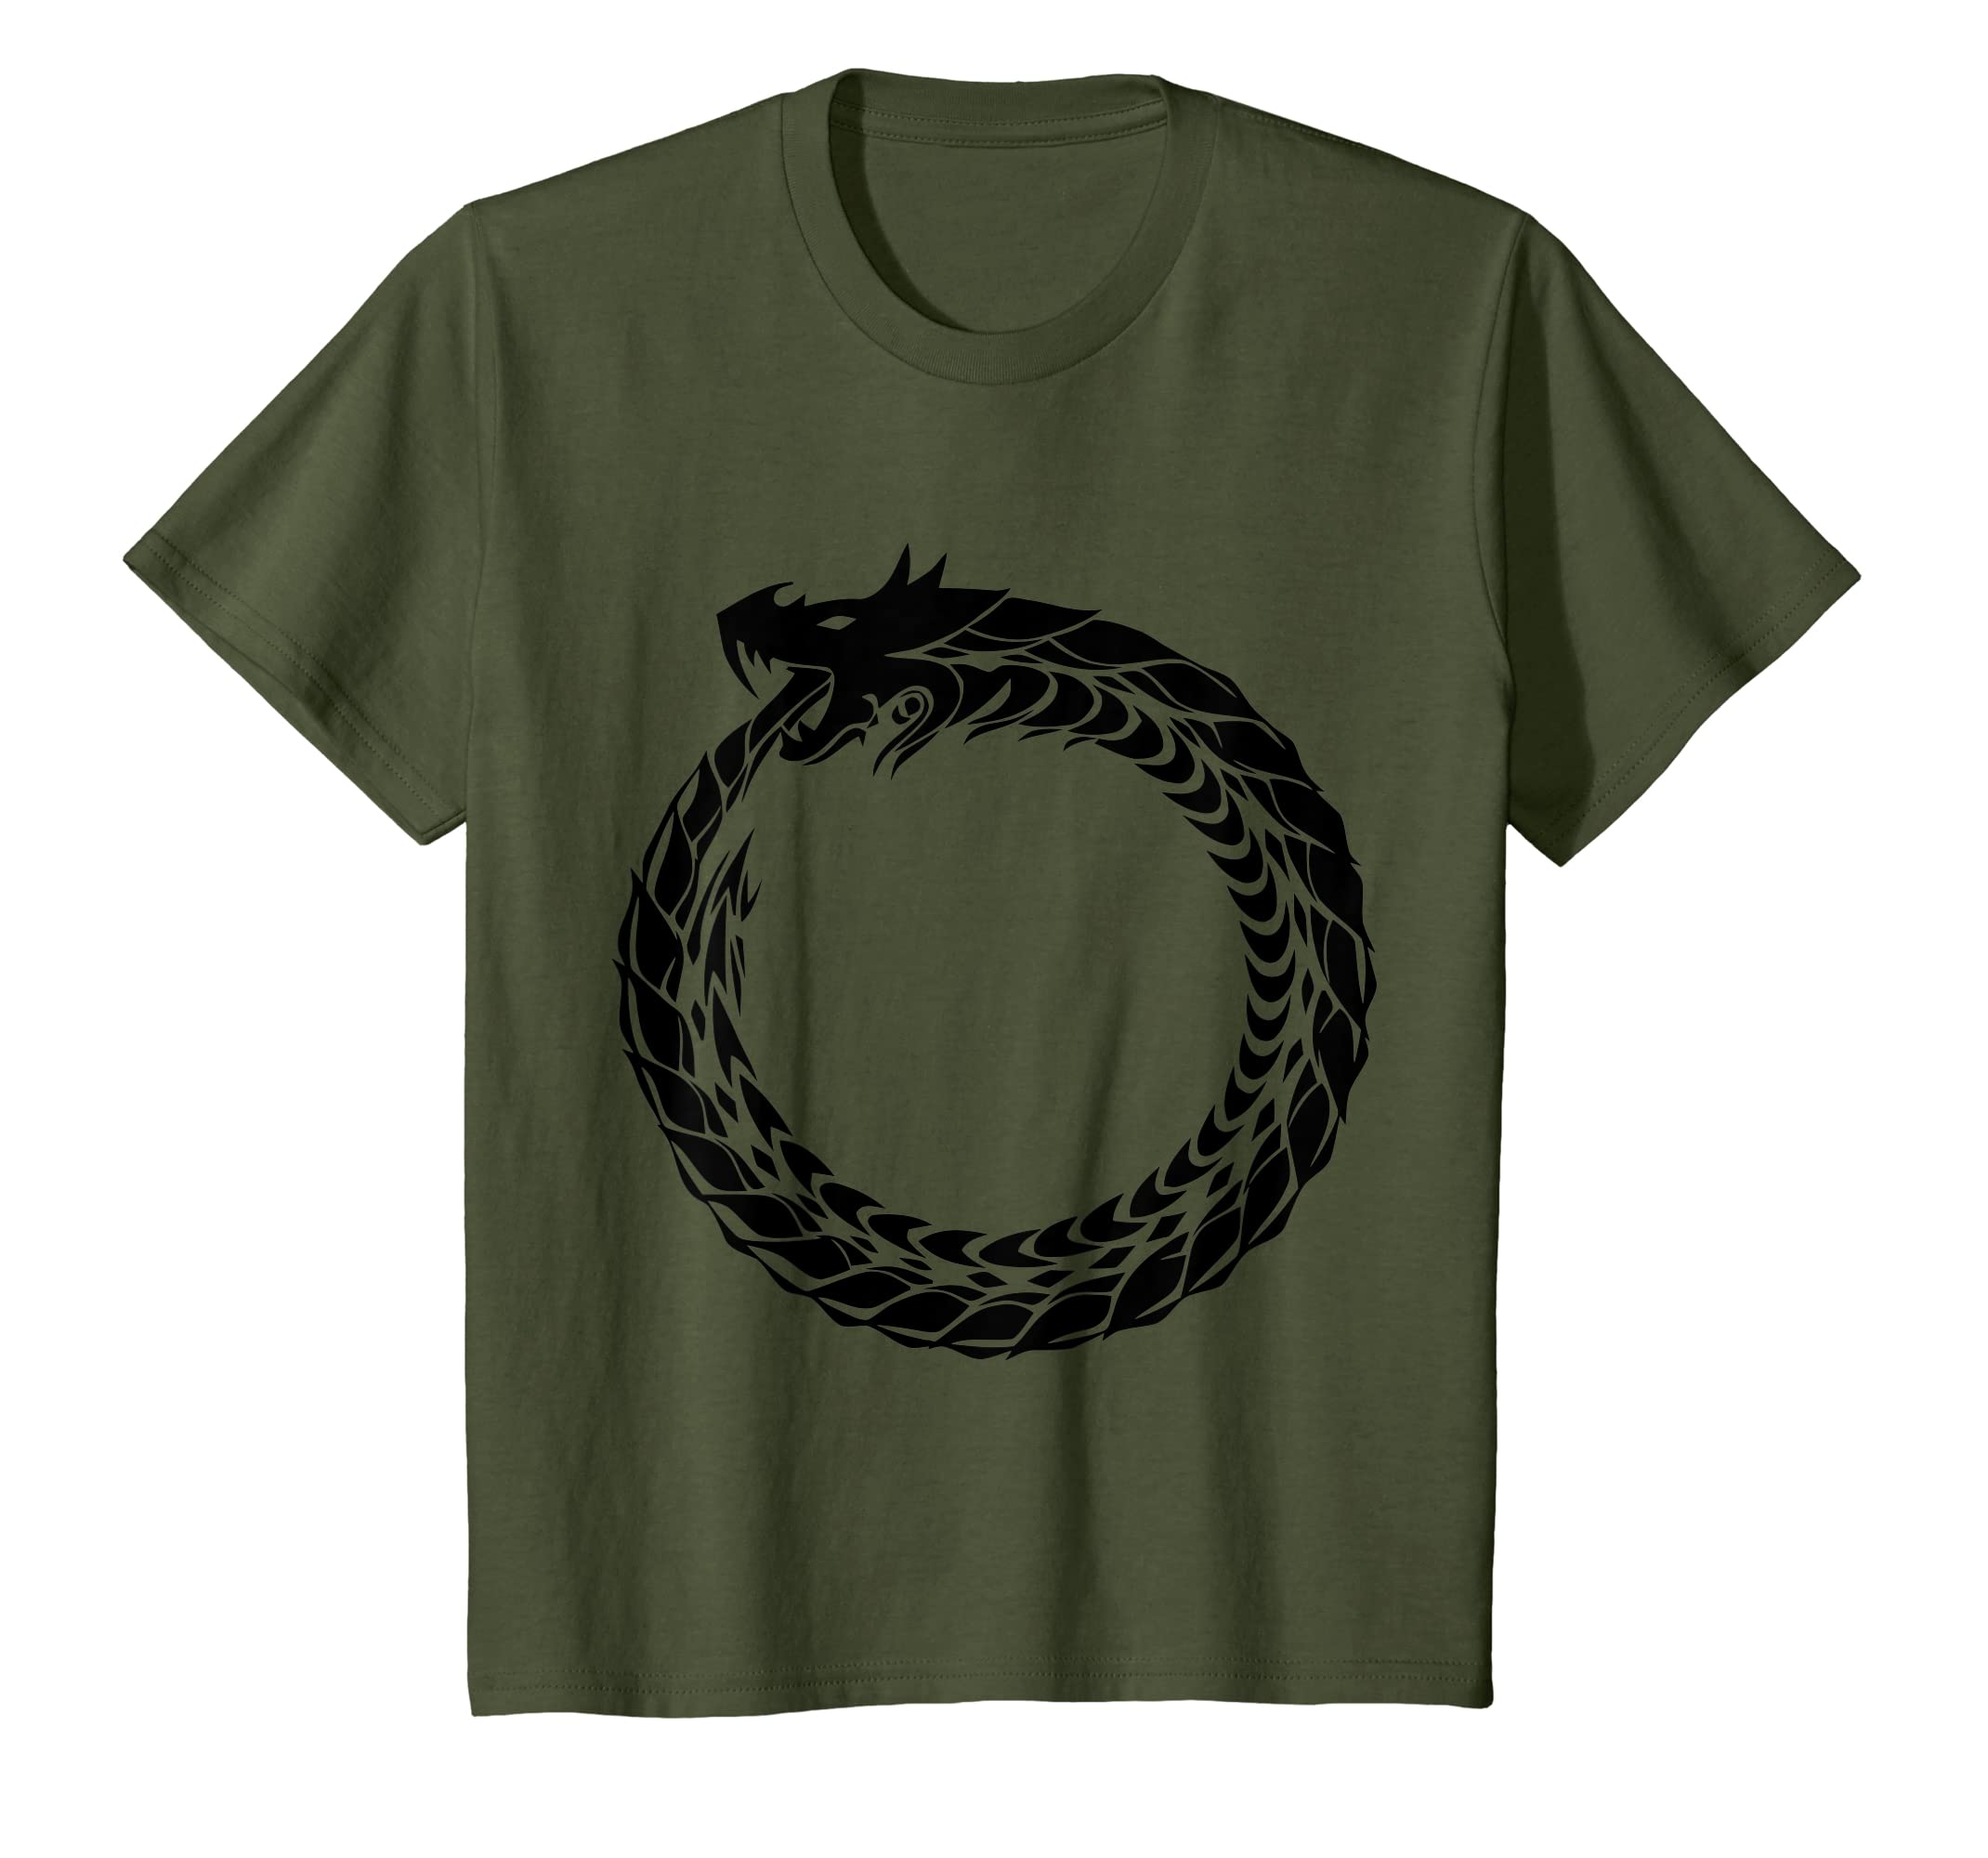 0af9cc3c Amazon.com: Ouroboros T-Shirt Snake Eating Tail Ancient Symbol Tee: Clothing